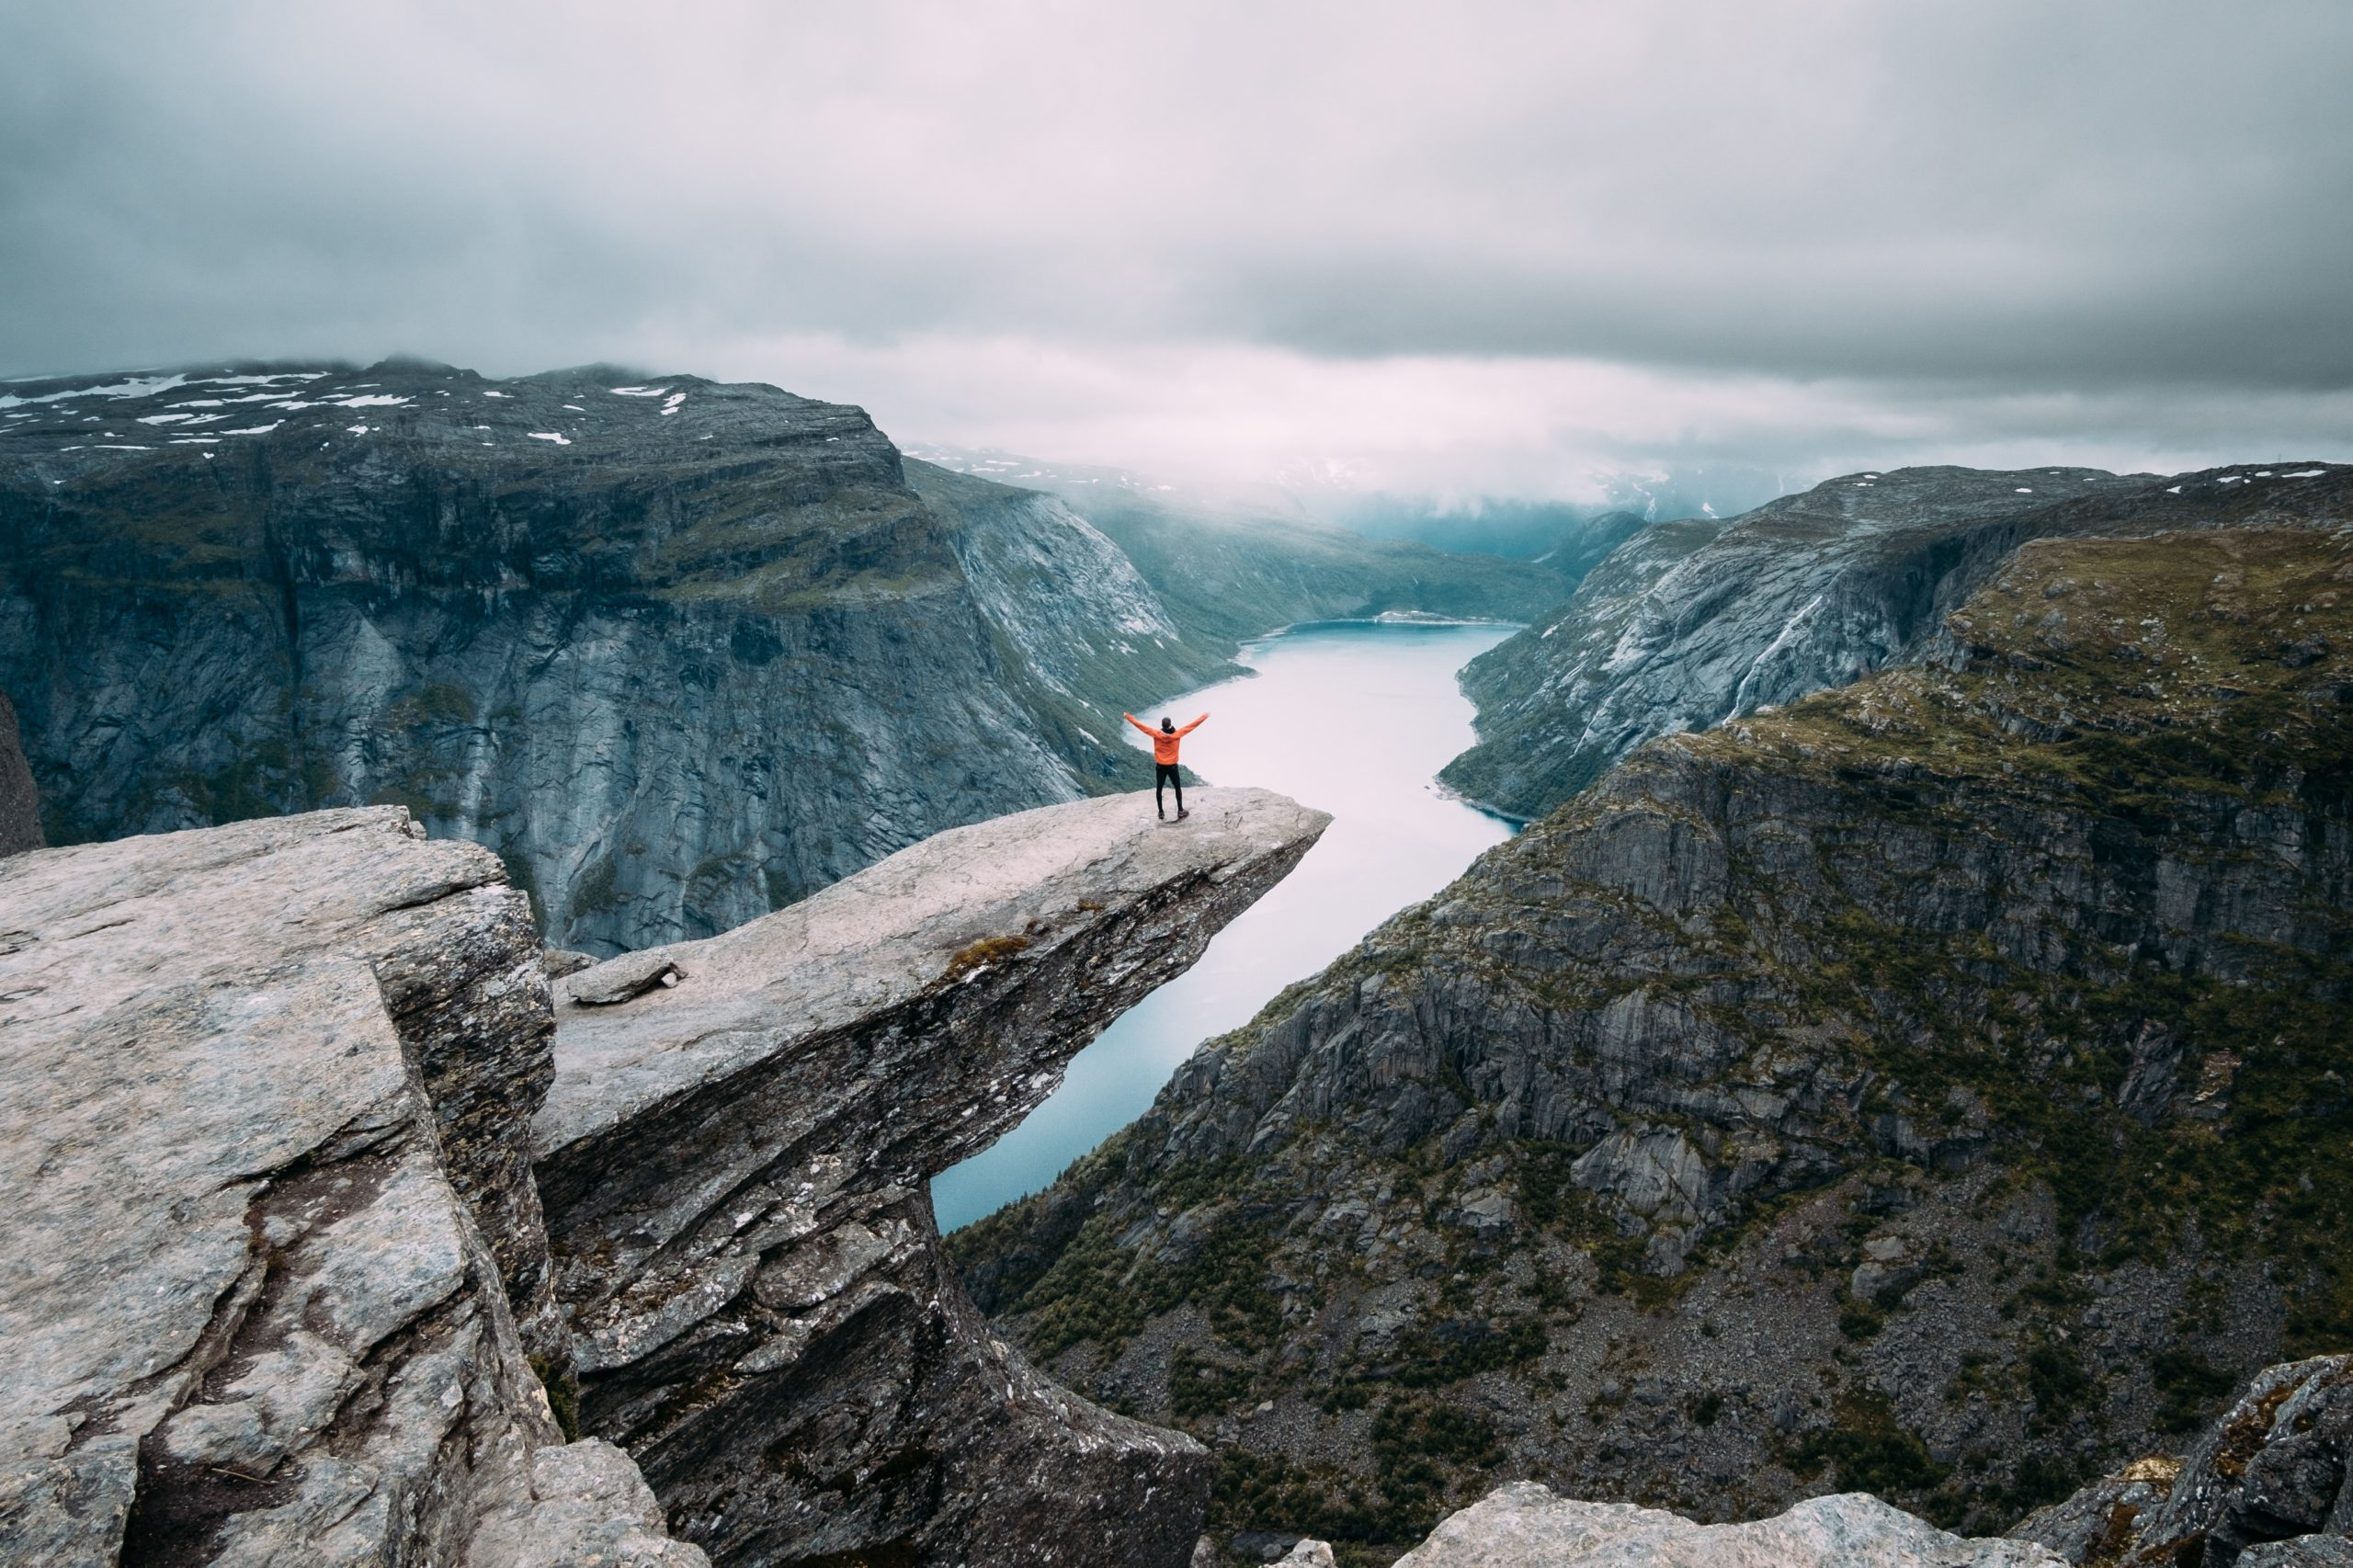 a man standing on the edge of a cliff